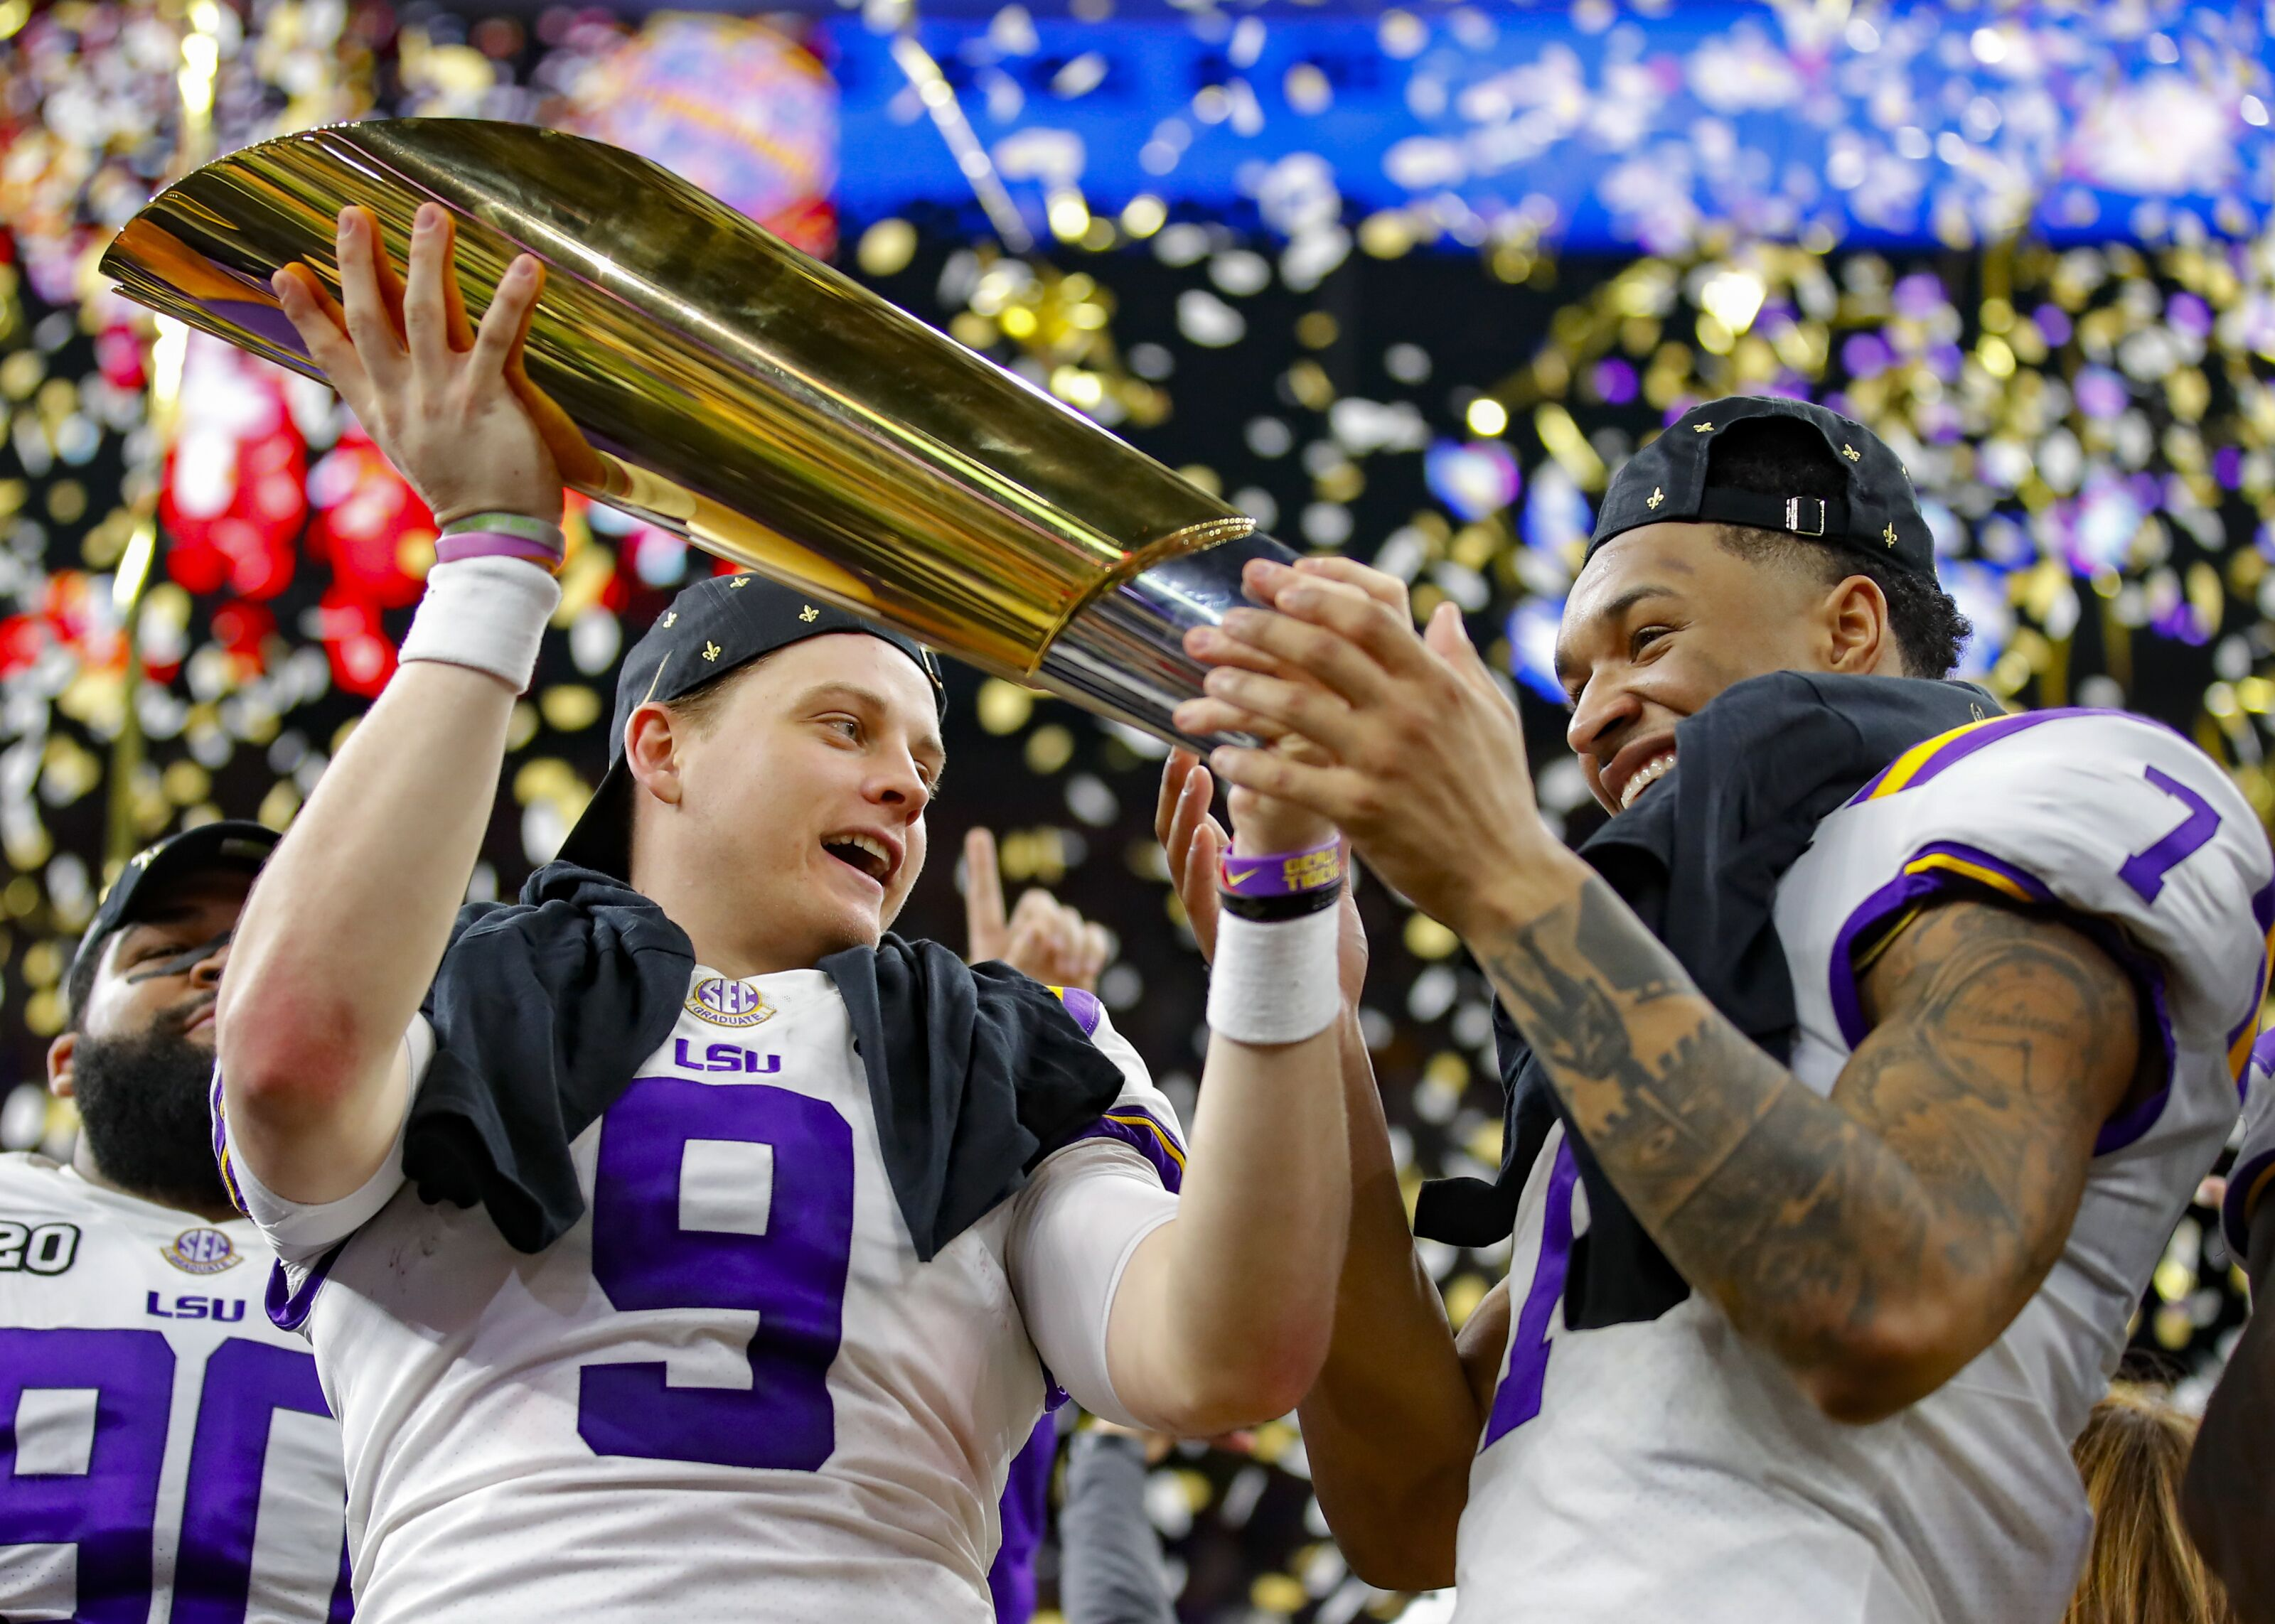 Making the case for 2019 LSU as the best college football team ever